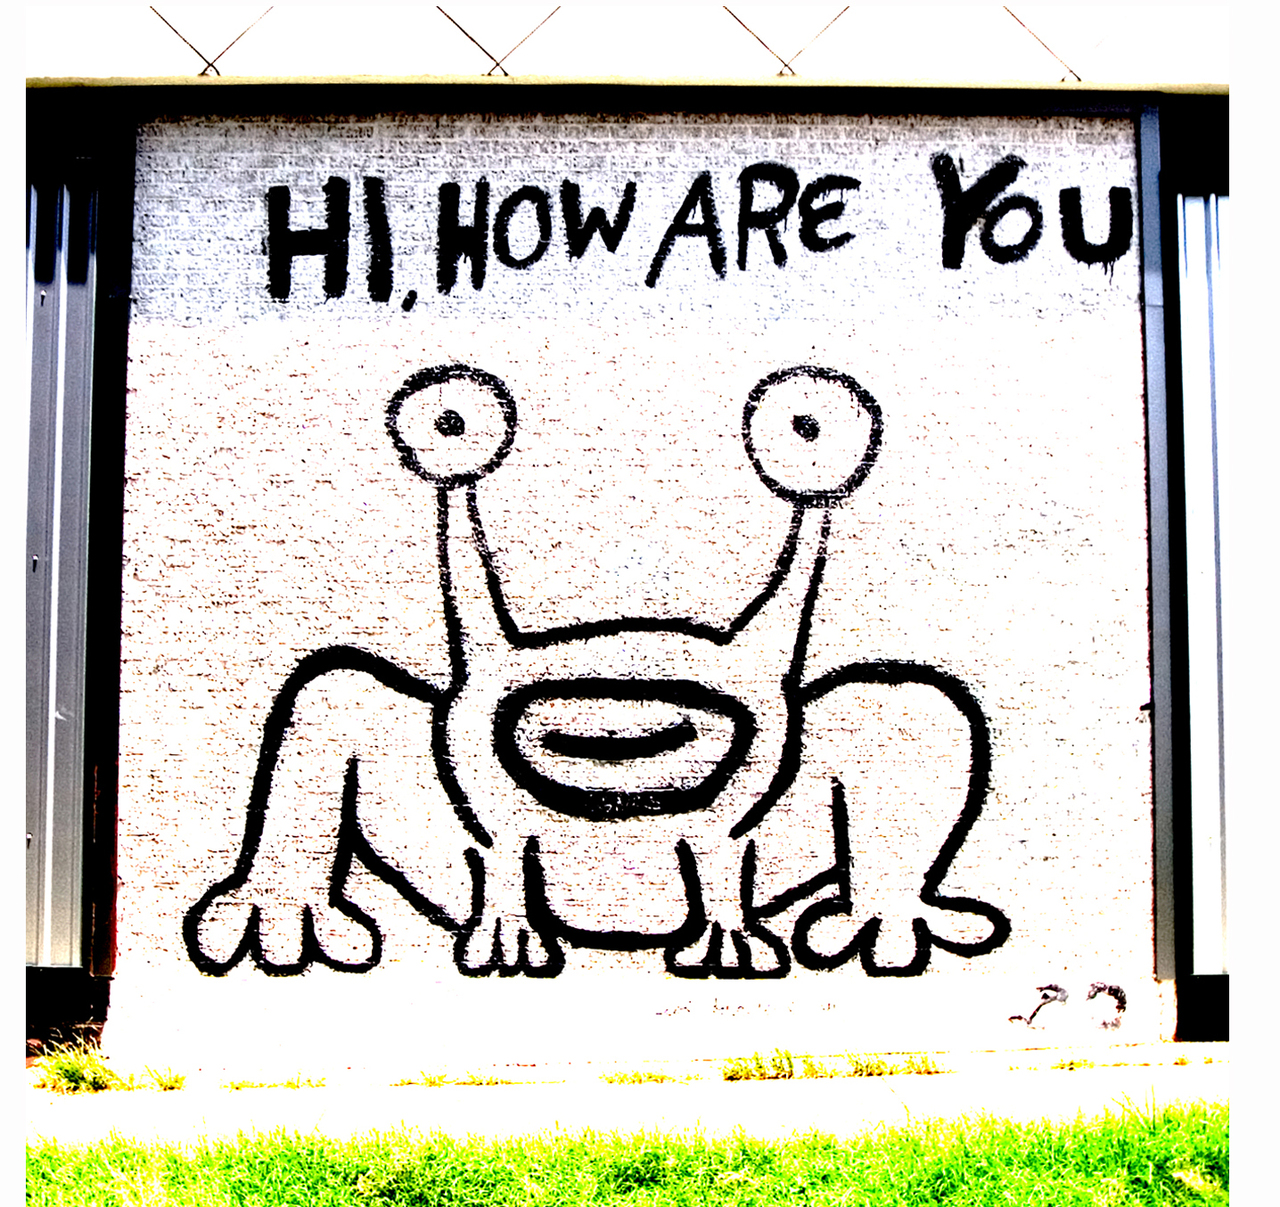 Hi how are you mural Austin, Texas